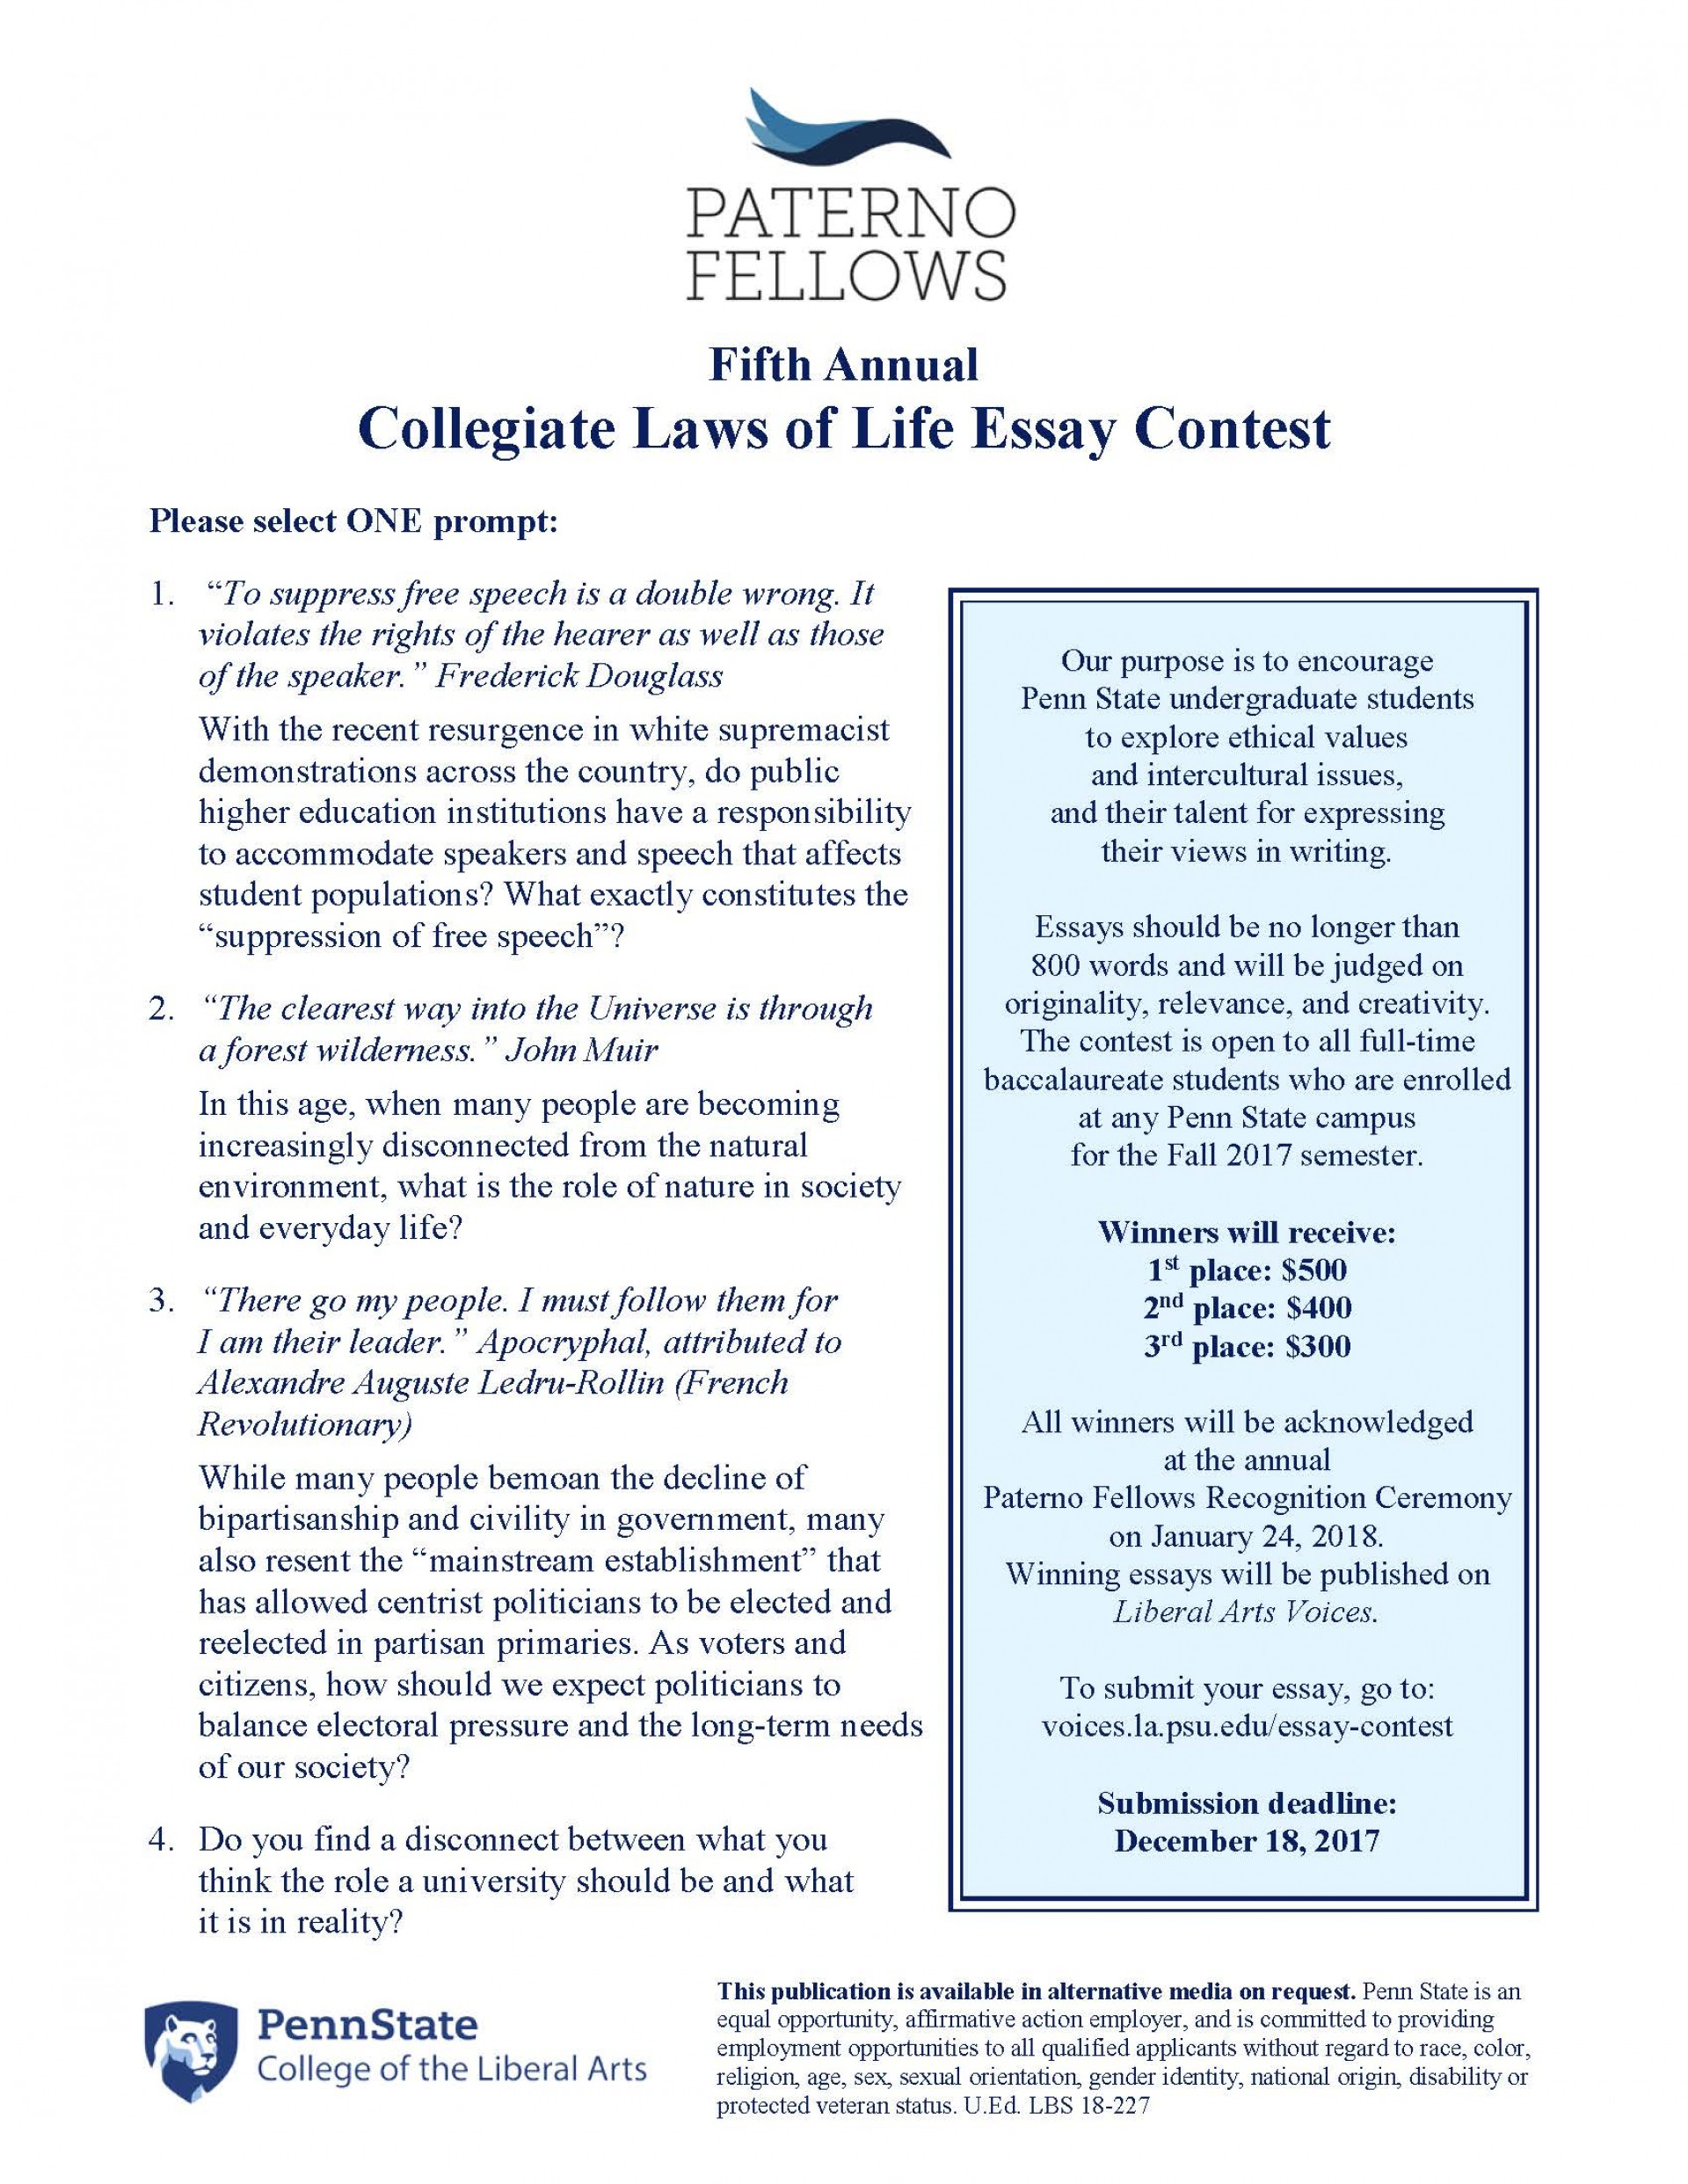 014 Clol Essay Flyer 2i7pwcs Example Law Of Awesome Life Laws Contest Ohio 2016 Competition Bahamas 2018 1920